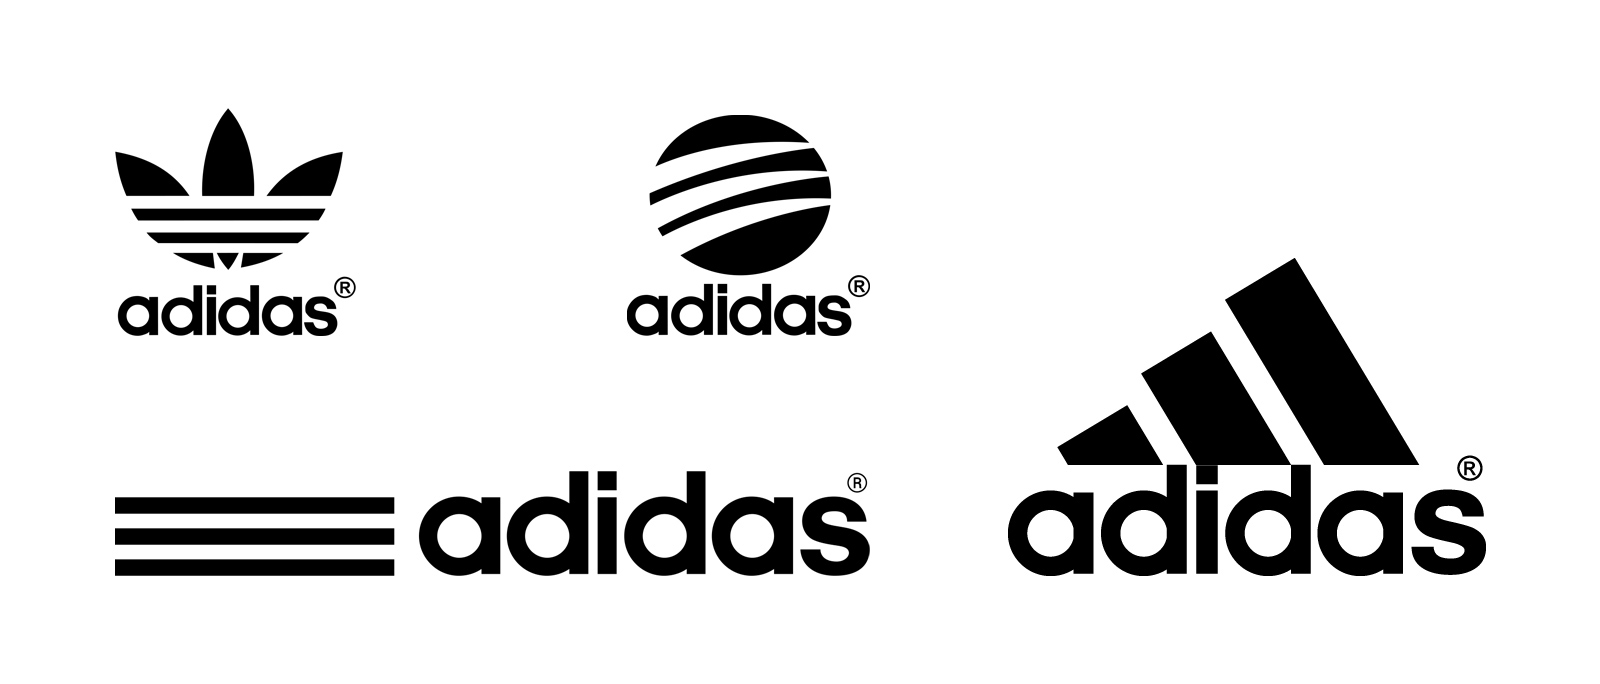 Adidas Brand Design Study On Behance